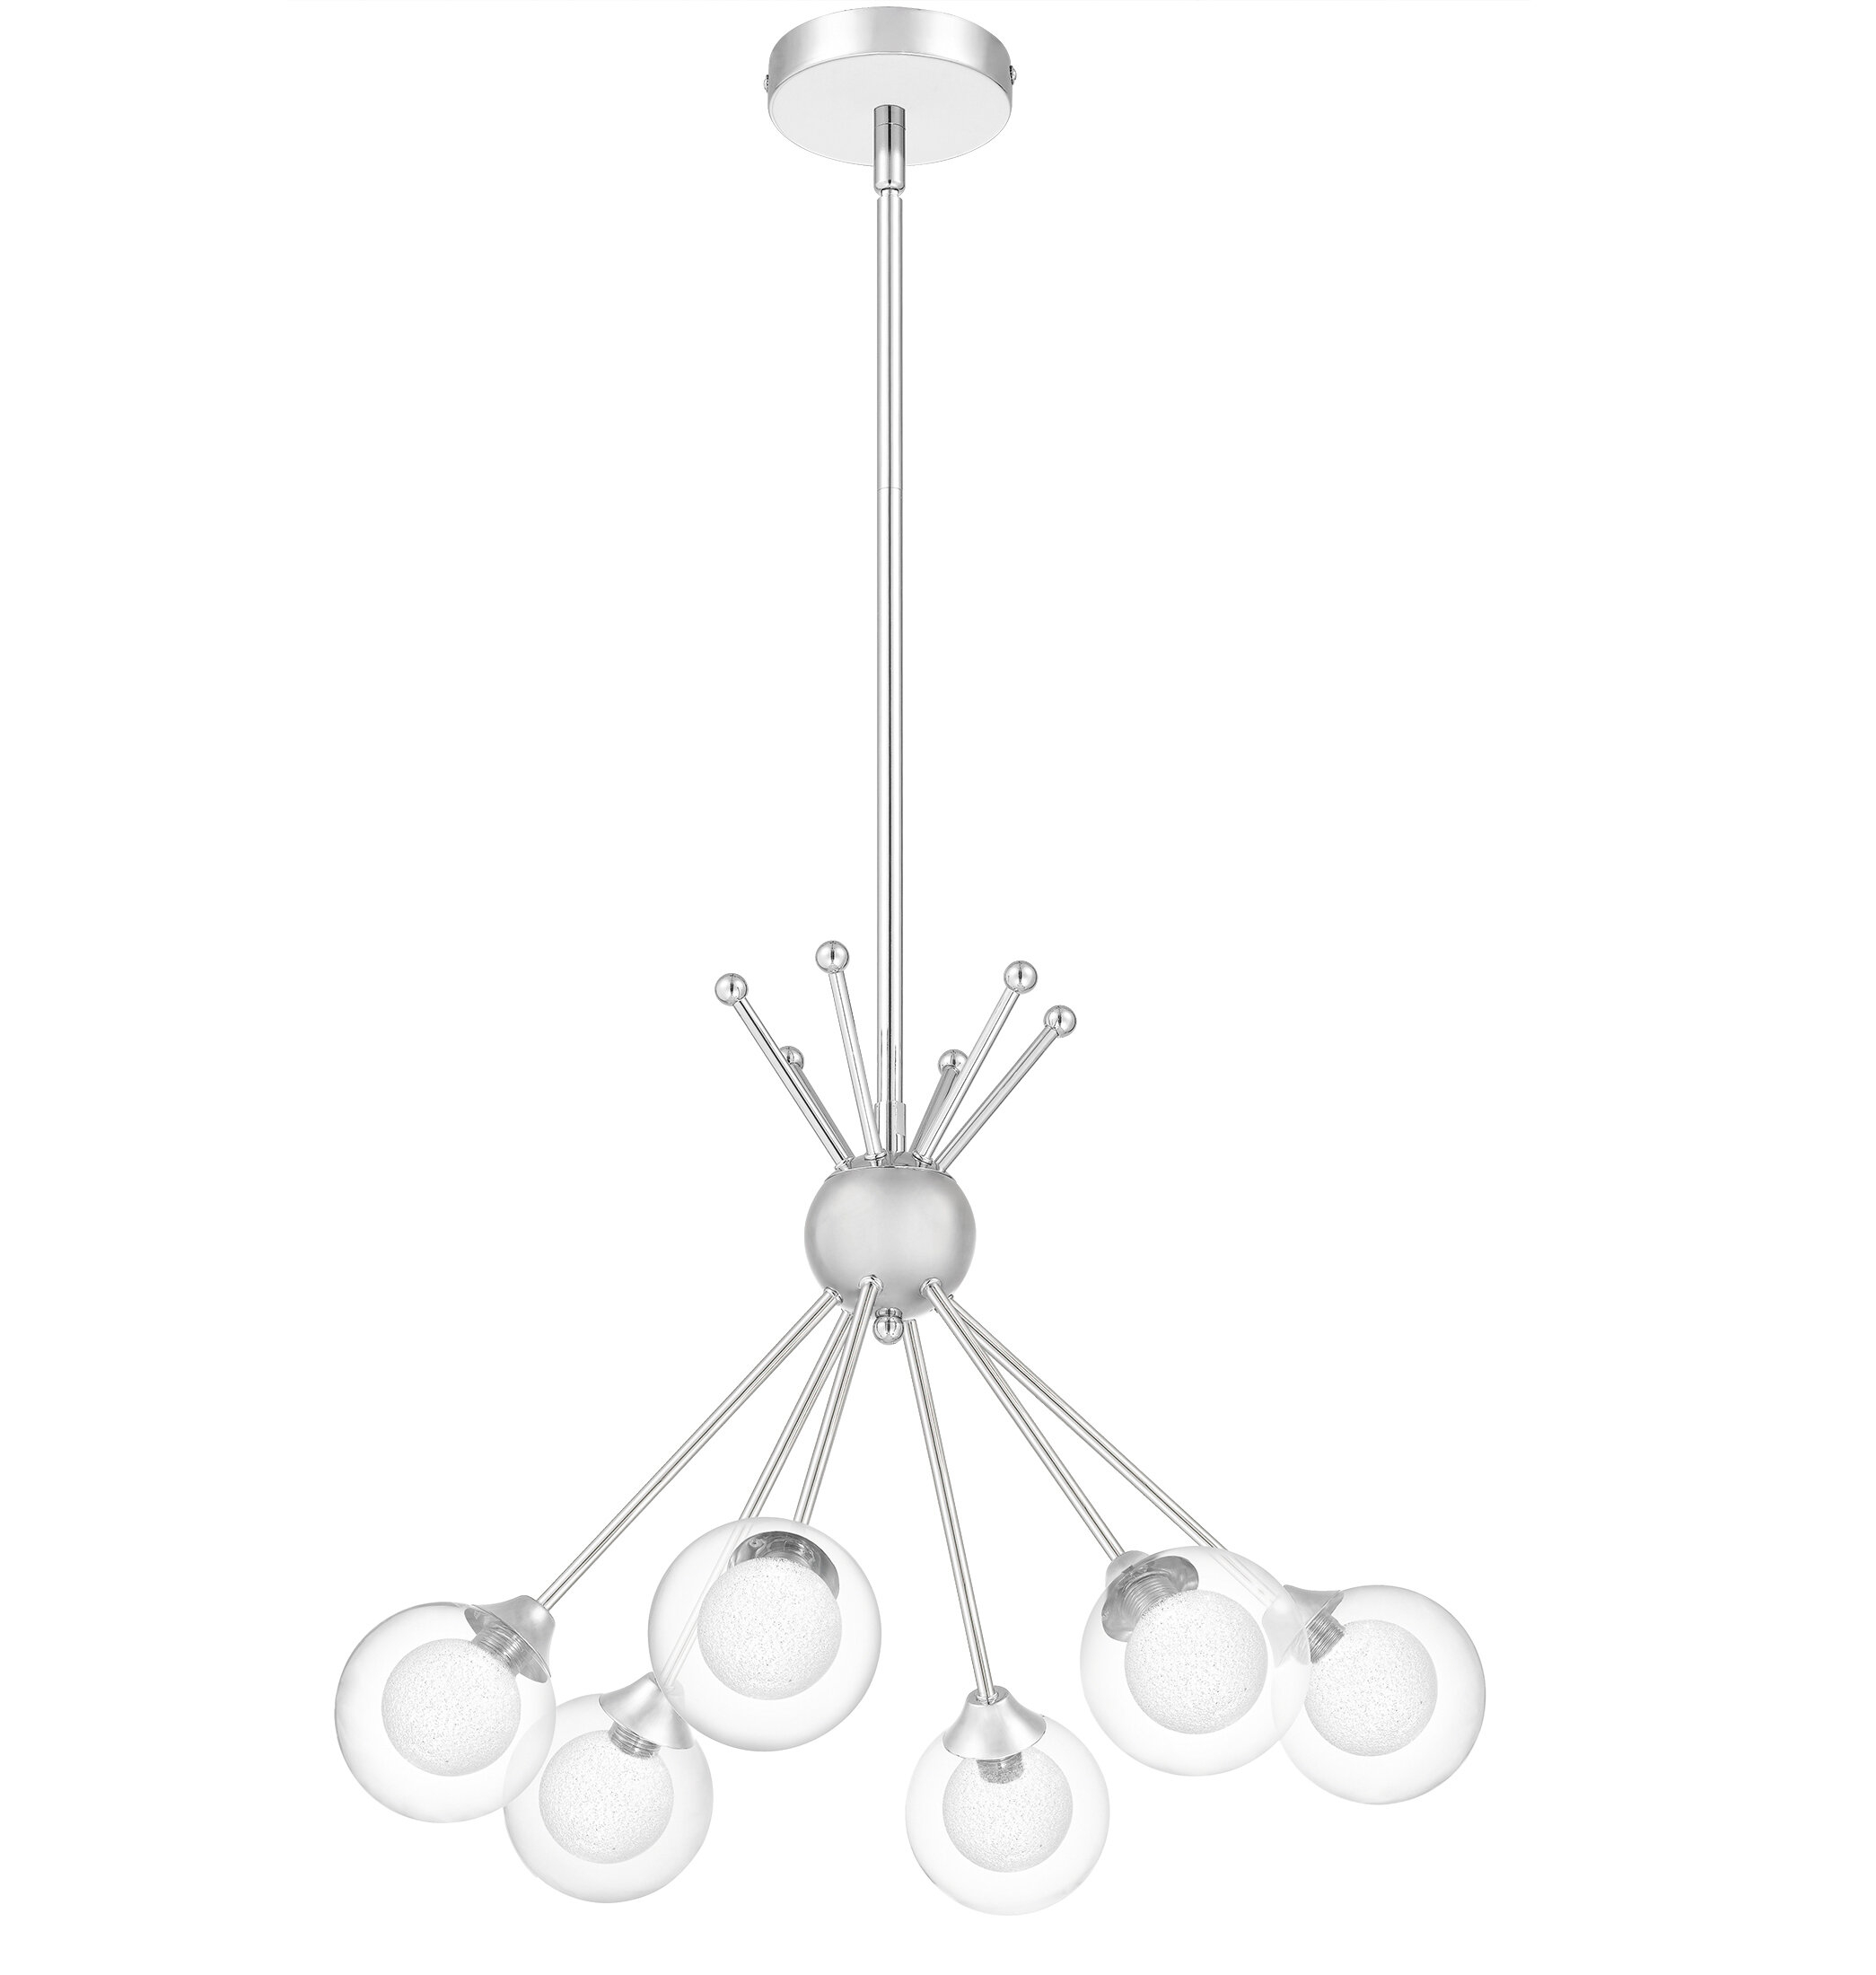 Rossana 6 Light Sputnik Chandelier Within Silvia 6 Light Sputnik Chandeliers (Gallery 16 of 30)